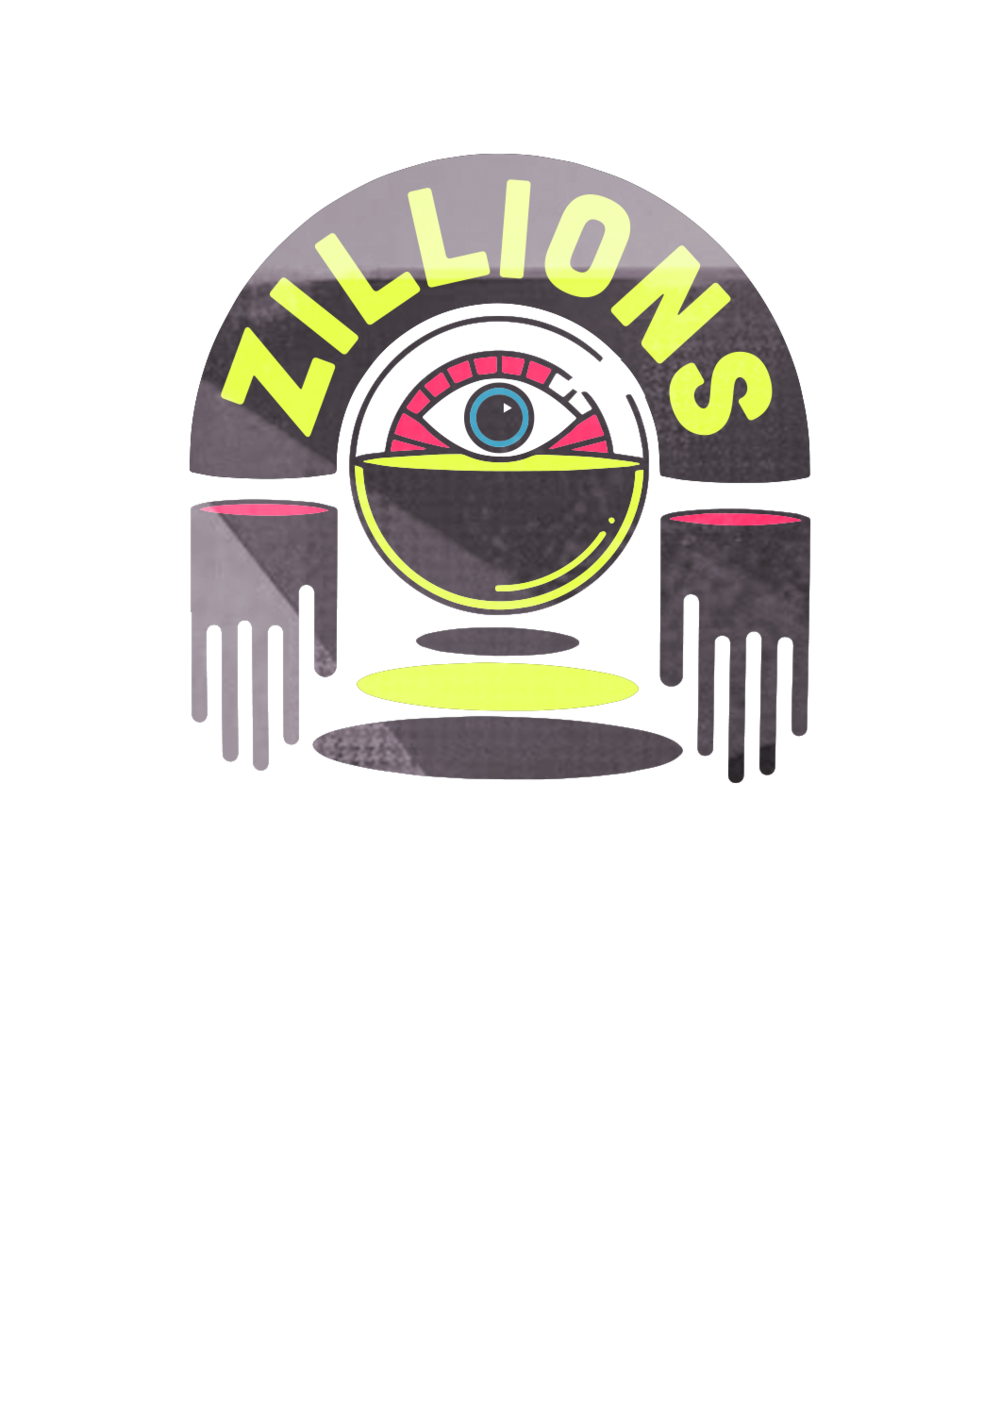 zillions3.png